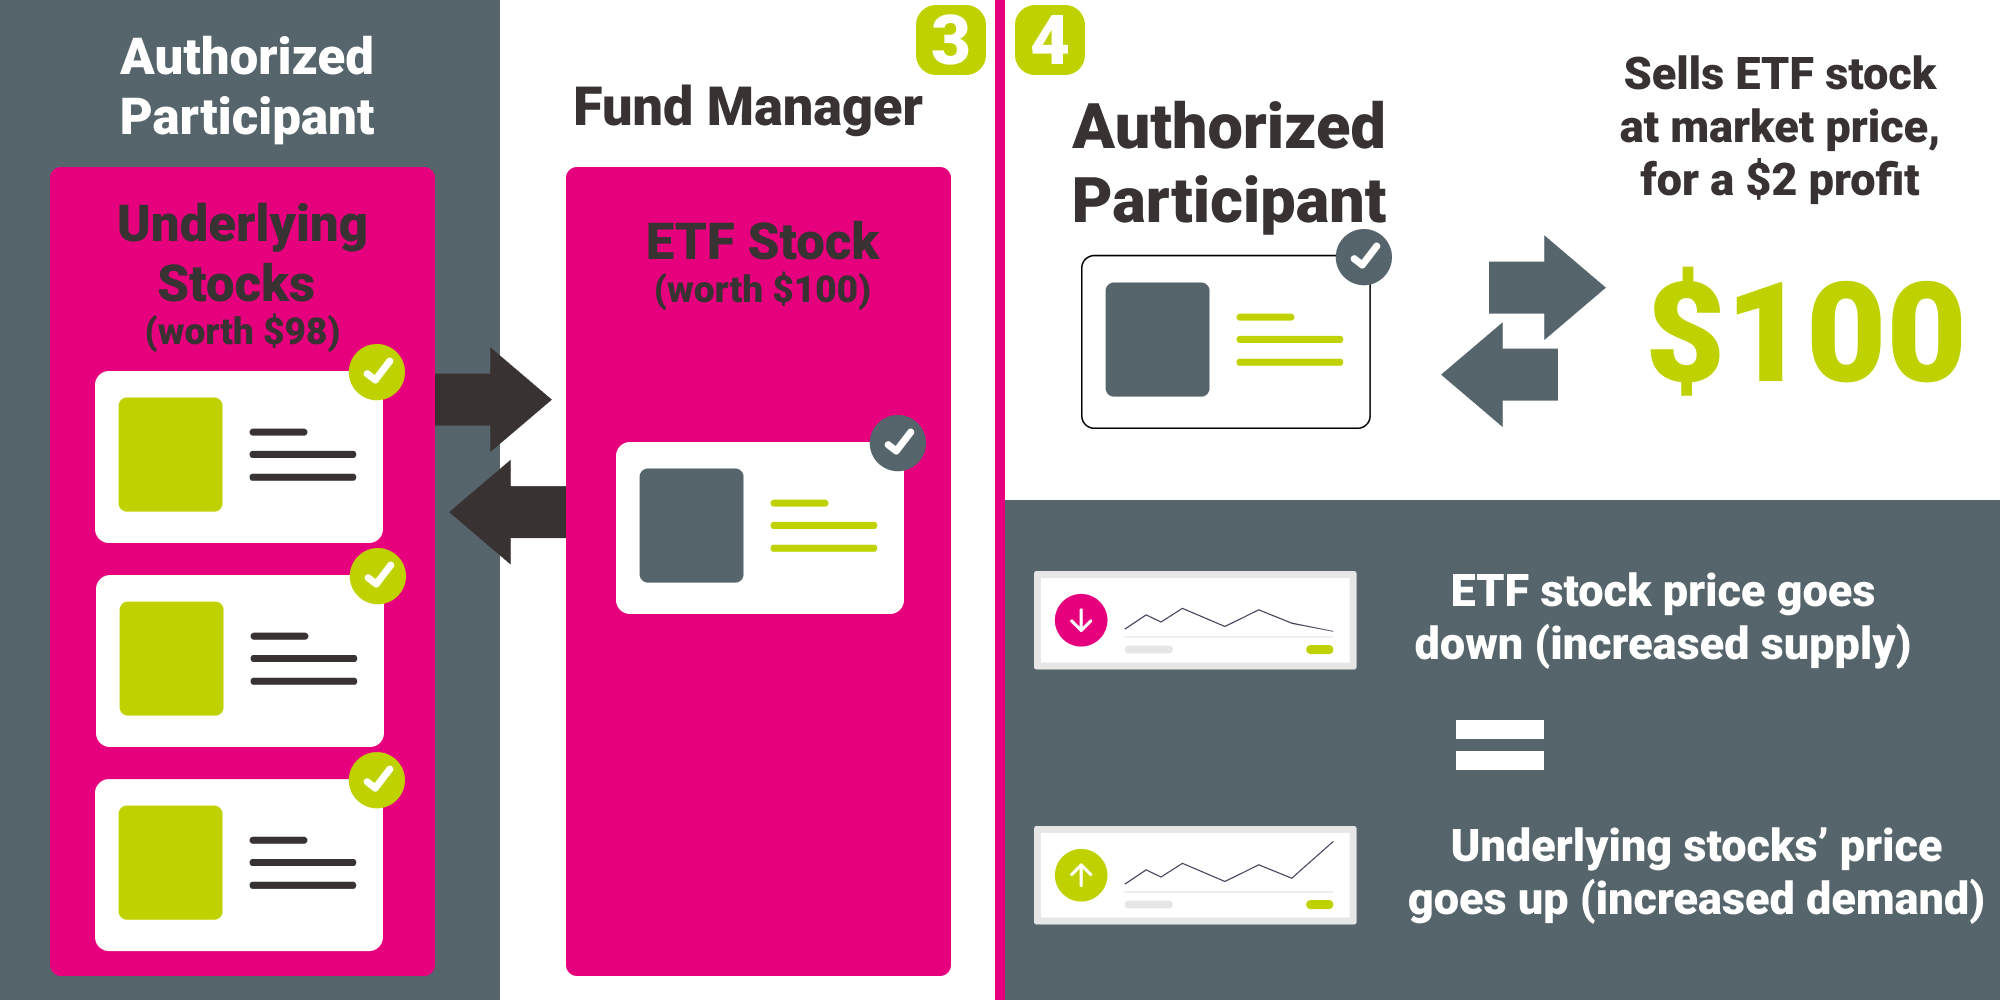 How ETFs work: authorized participants trade the underlying stocks with the ETF stocks that they resell at market price, for a profit